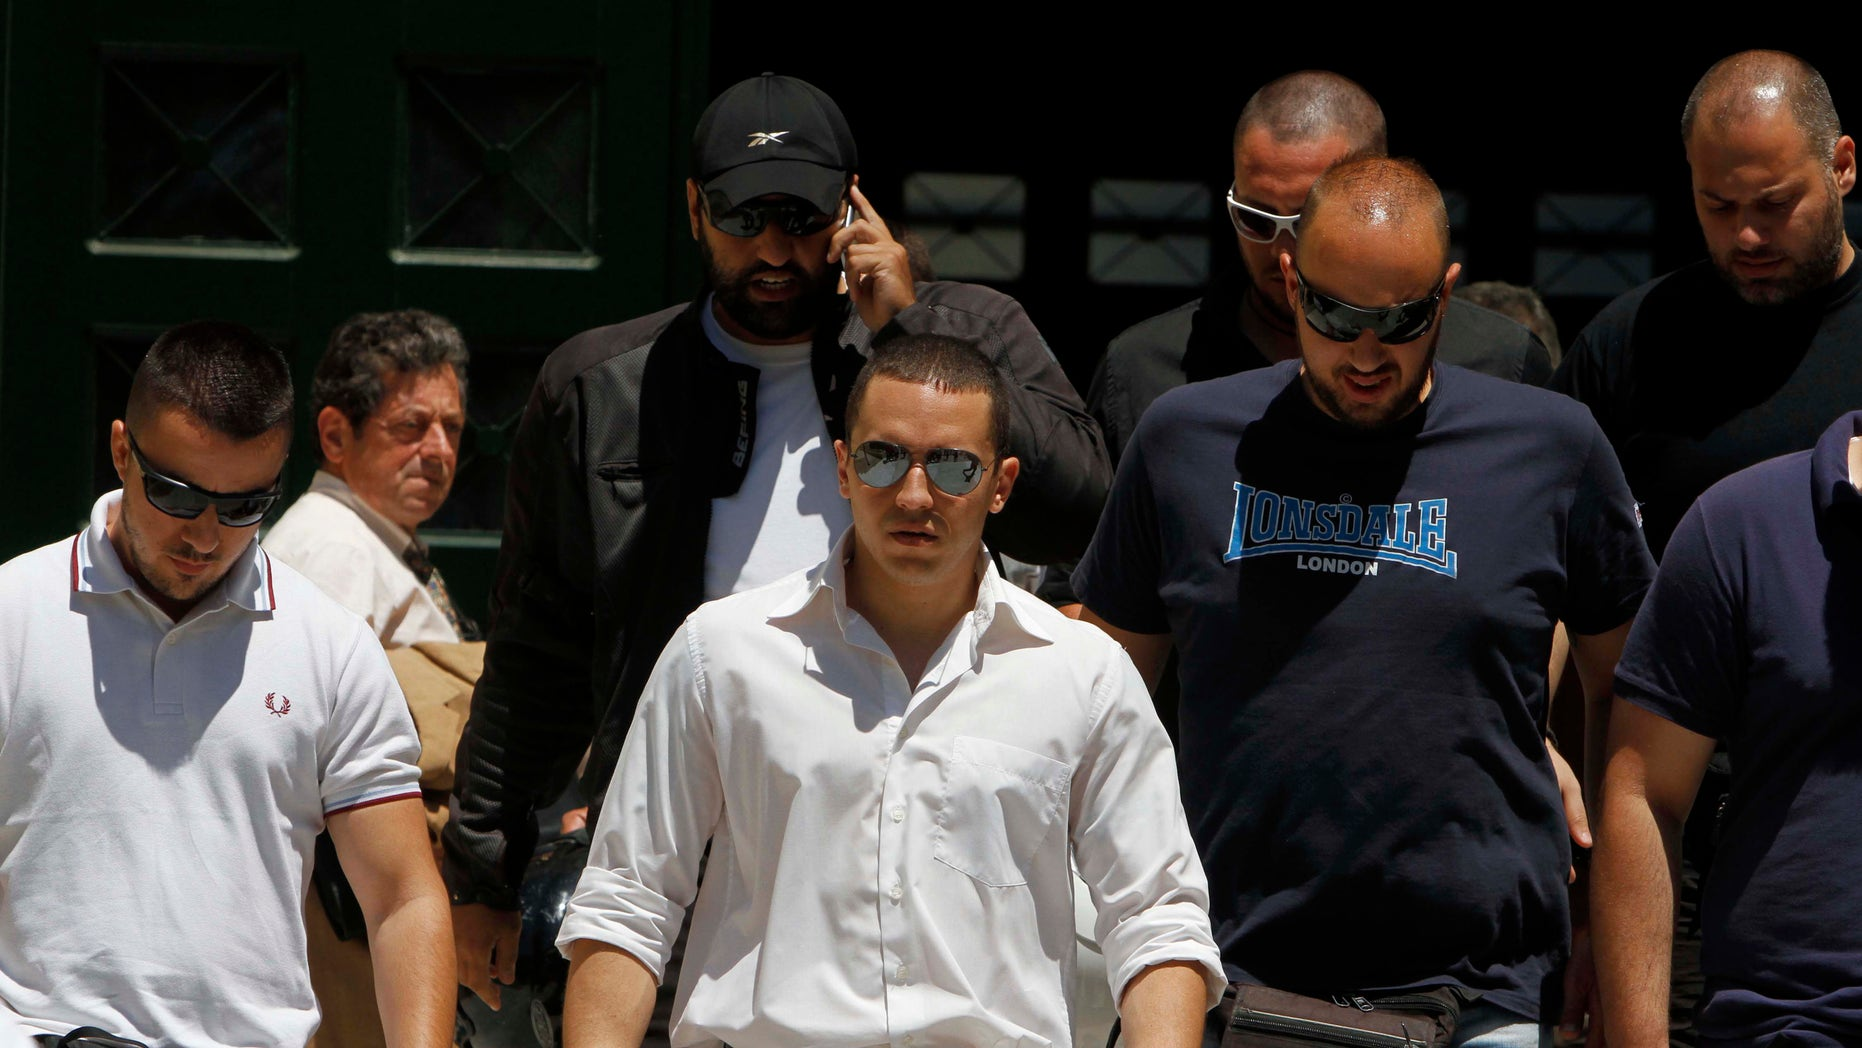 June 11, 2012: The spokesman of Greece's extreme-right Golden Dawn party Ilias Kasidiaris, center, is escorted by party members as they exit the prosecutor's office in Athens.